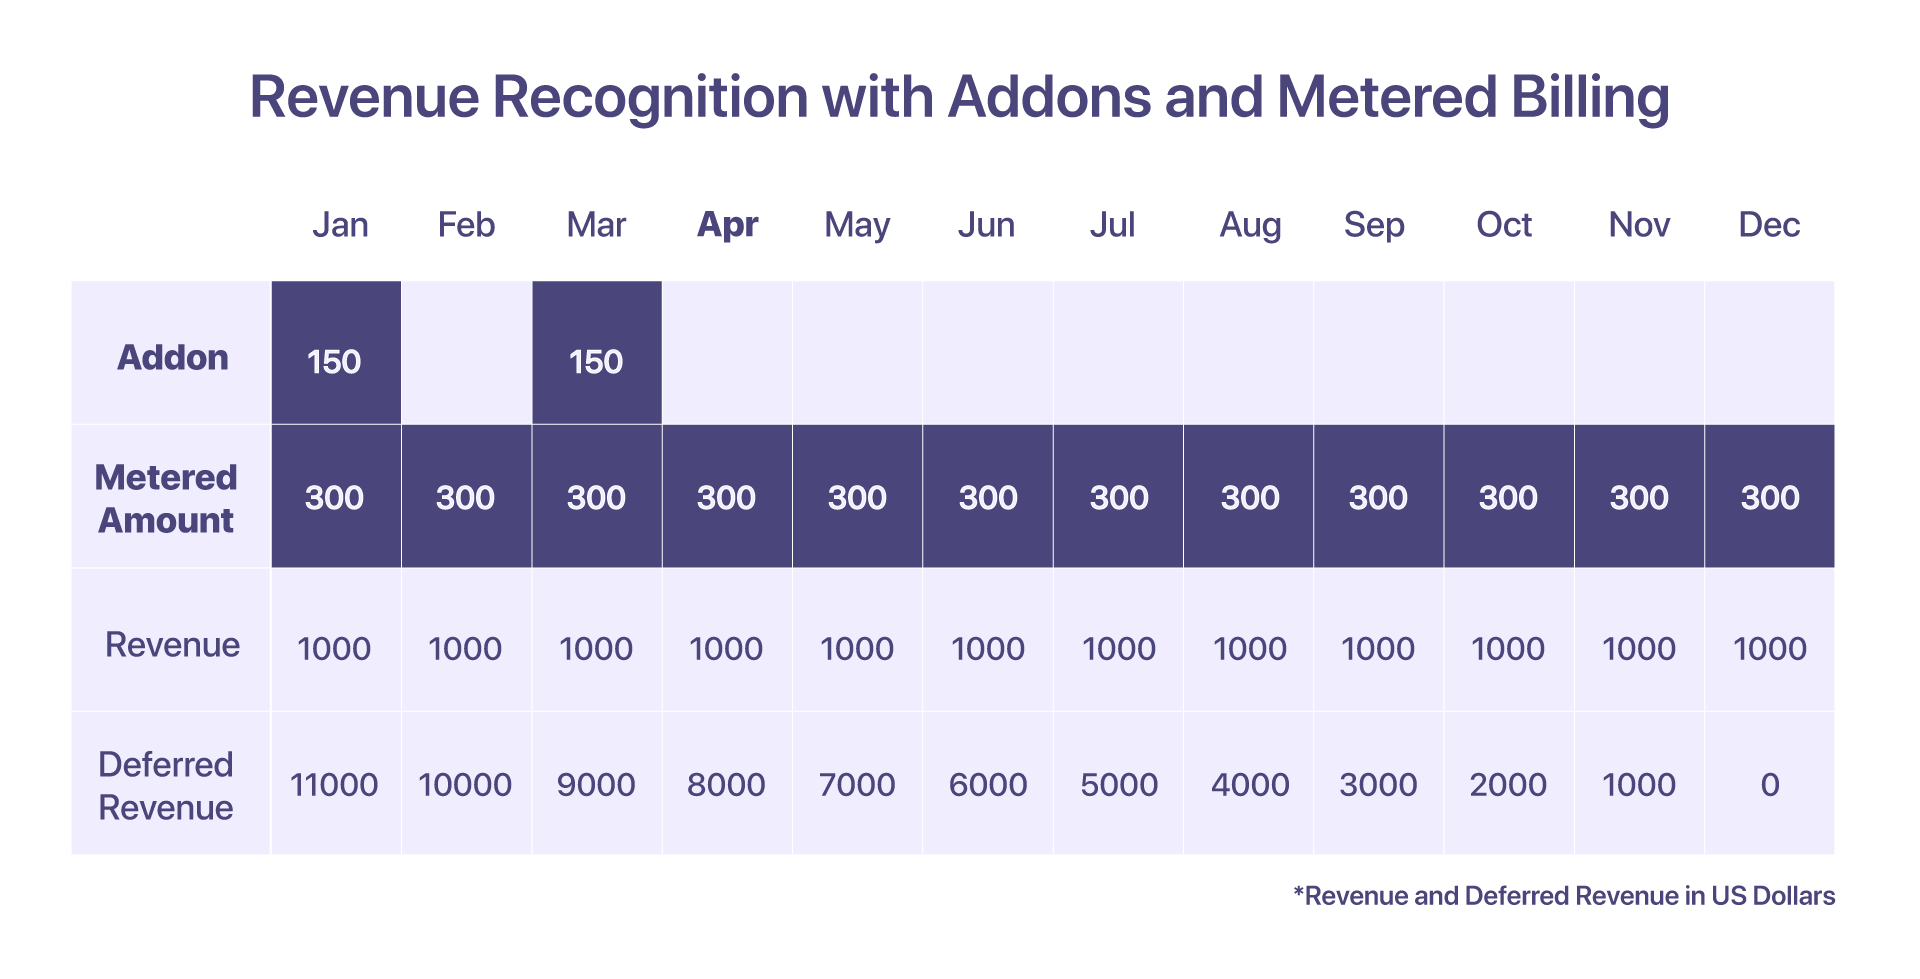 revenue recognition for addons and metered billing